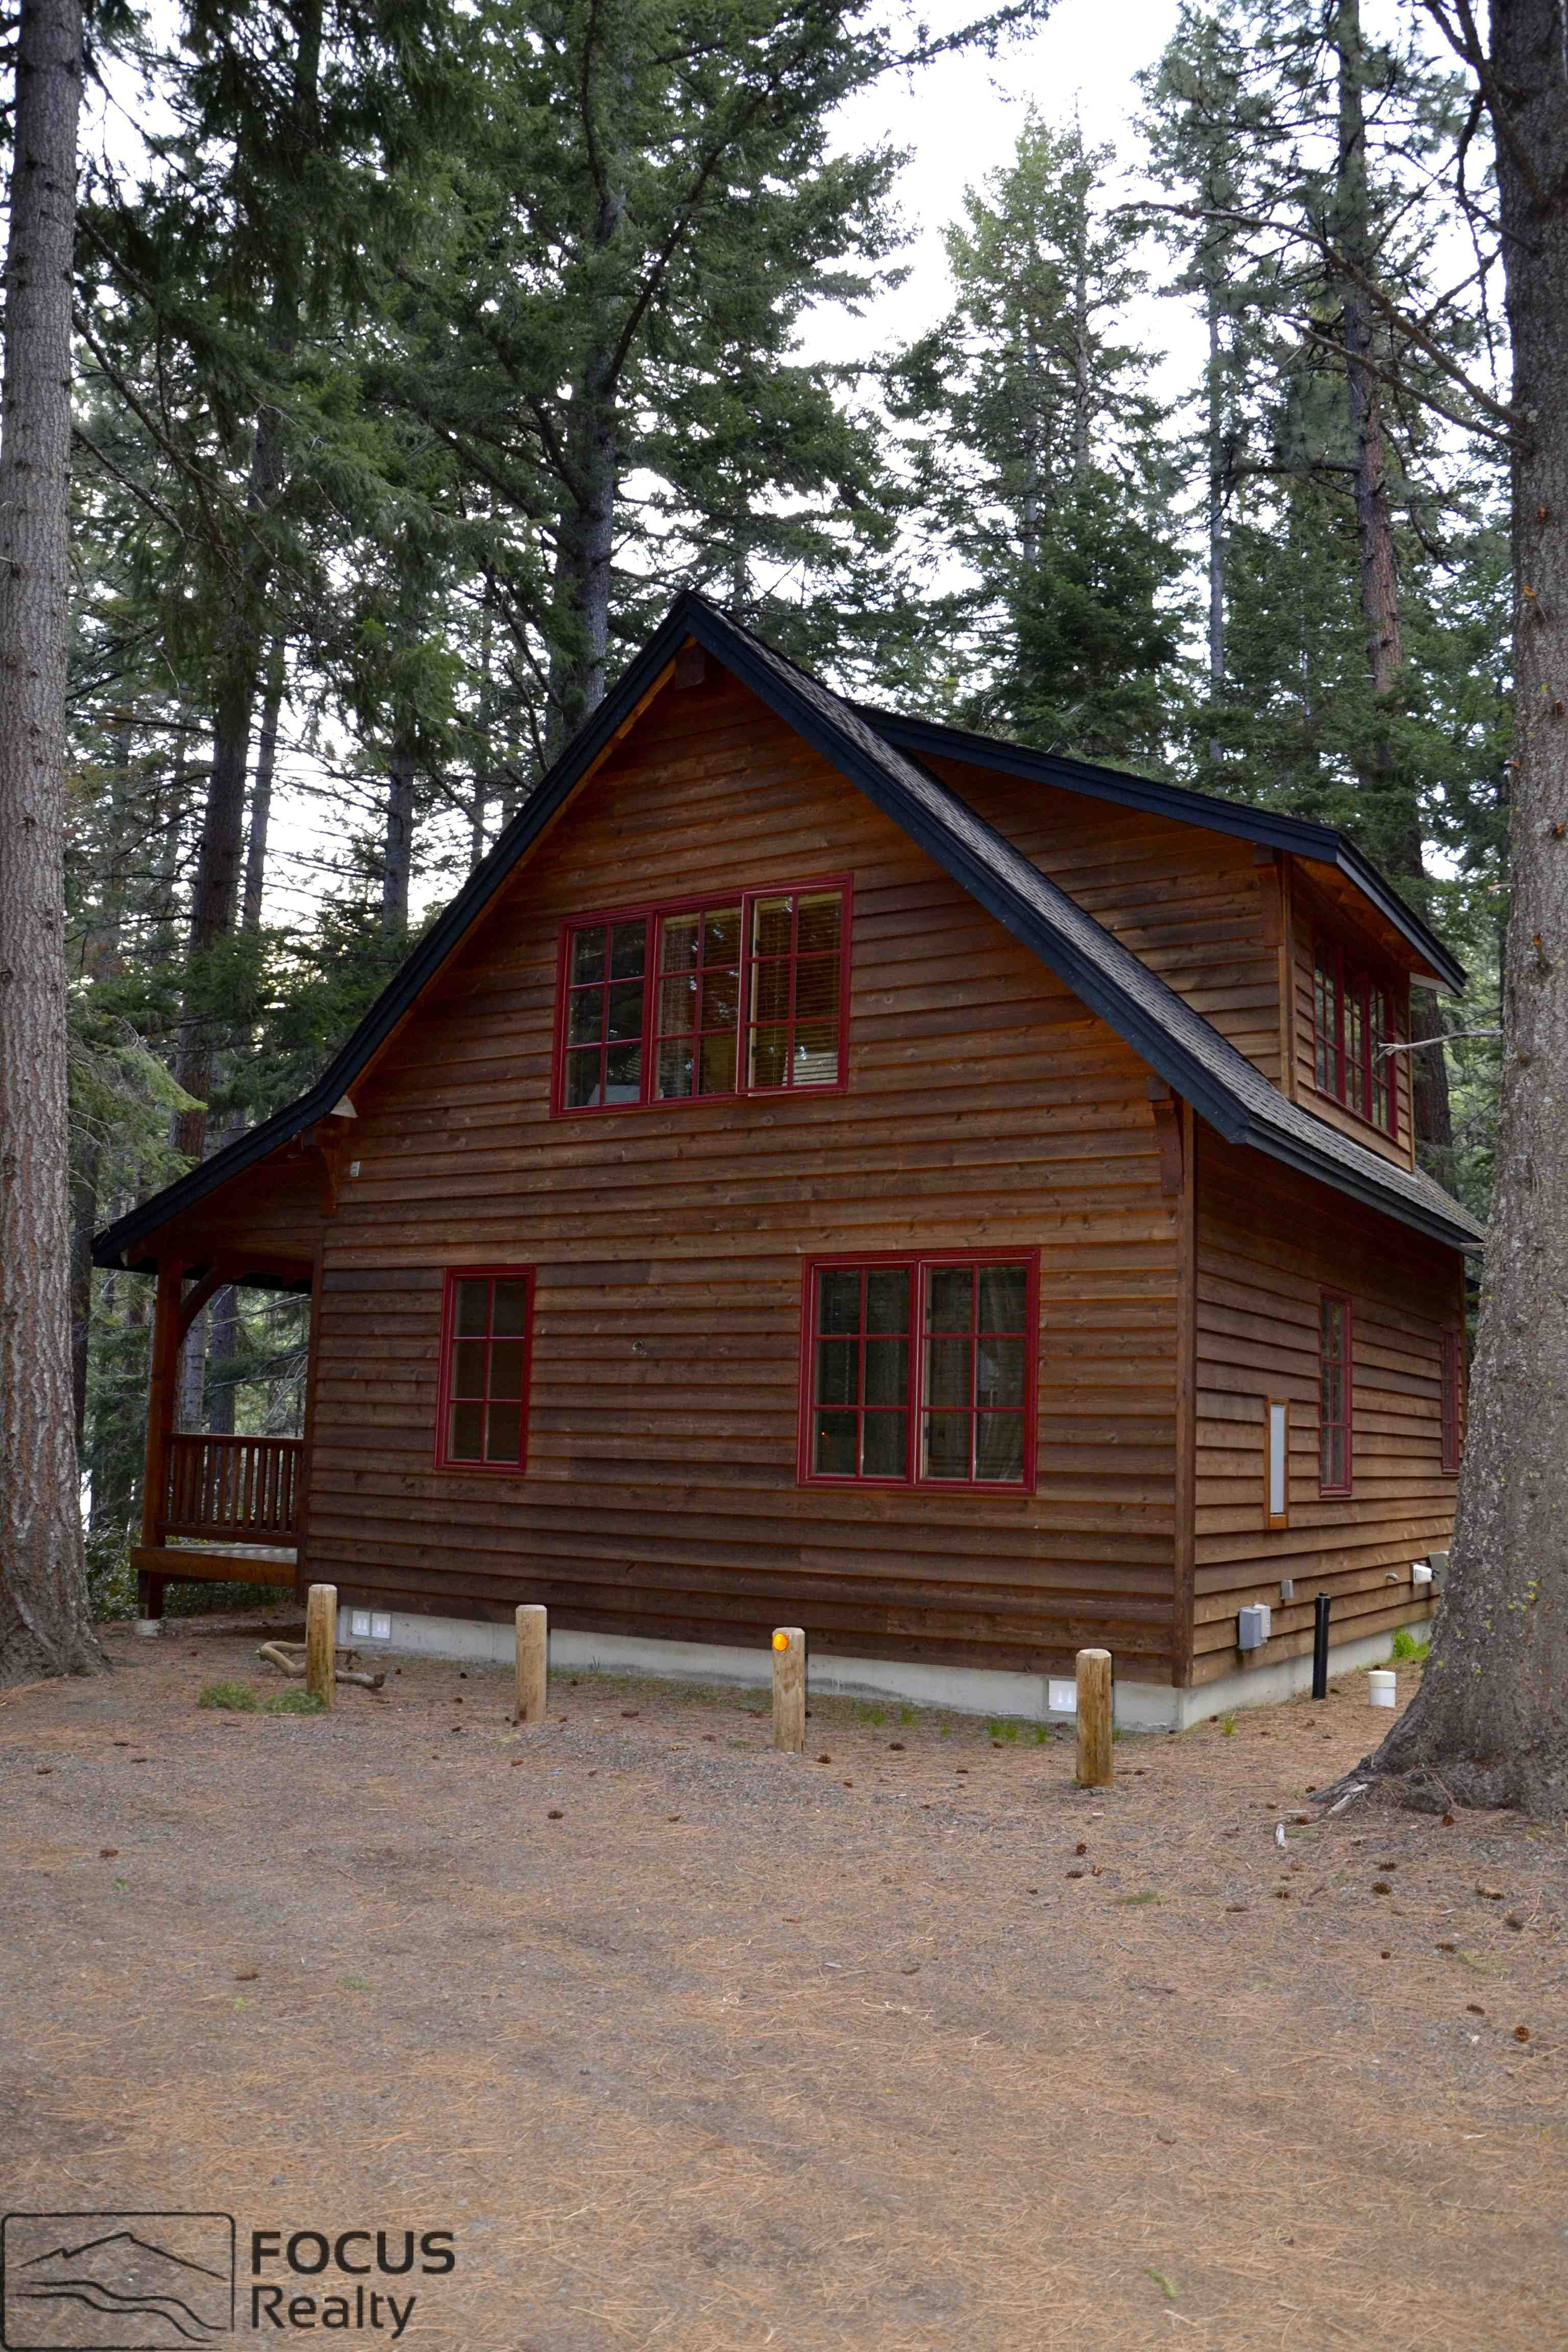 Central Oregon S Real Estate Search Focus Realty Central Oregon Lake Lodge Sisters Oregon